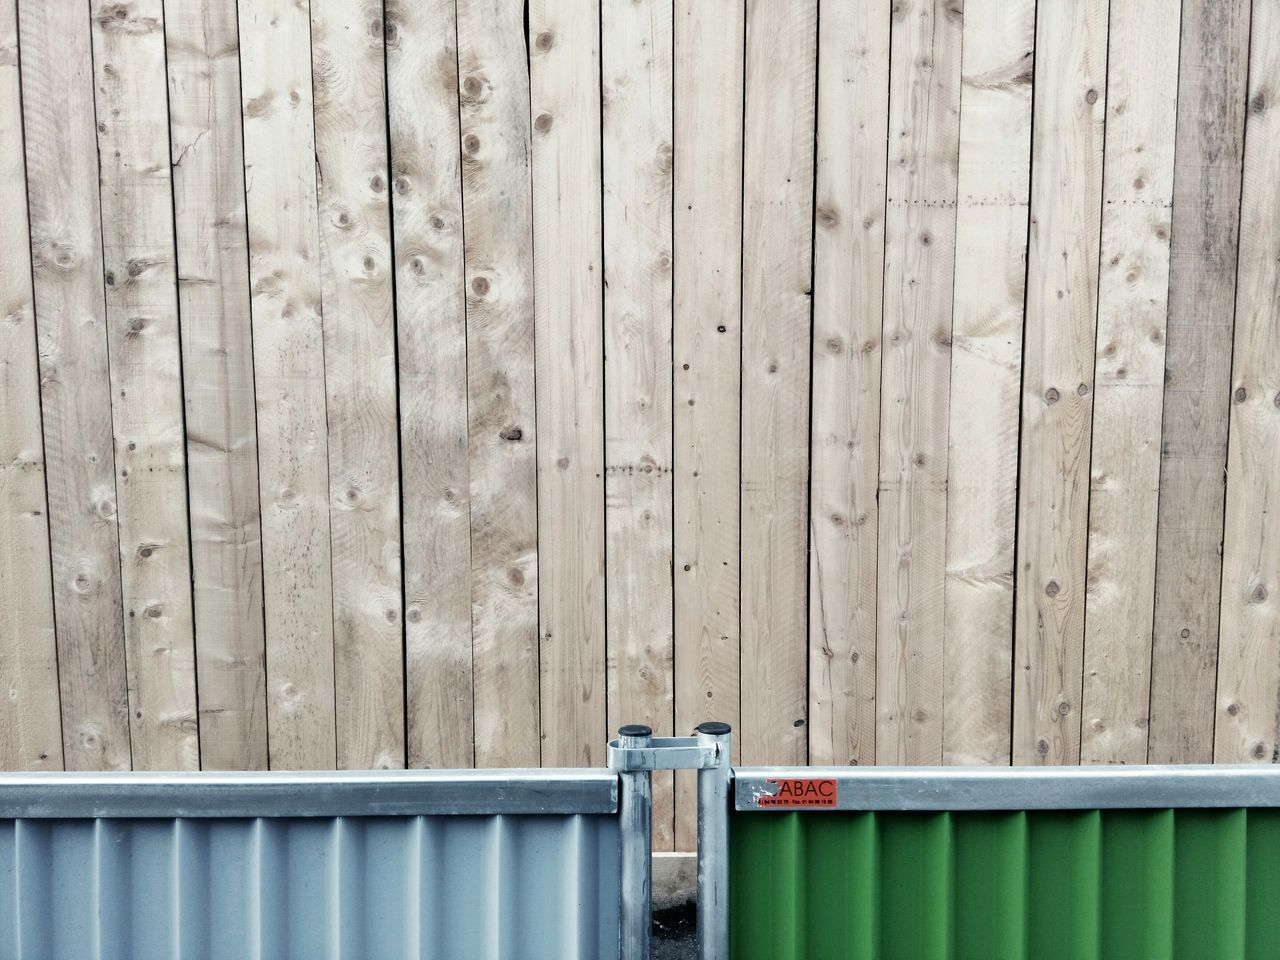 Deceptively Simple Streetphotography Urban Landscape Wooden Pallet Palissade Construction Fence Close-up Detail Minimalism No People Things I Like Here Belongs To Me Up Close Street Photography The Architect - 2016 EyeEm Awards Minimalist Architecture